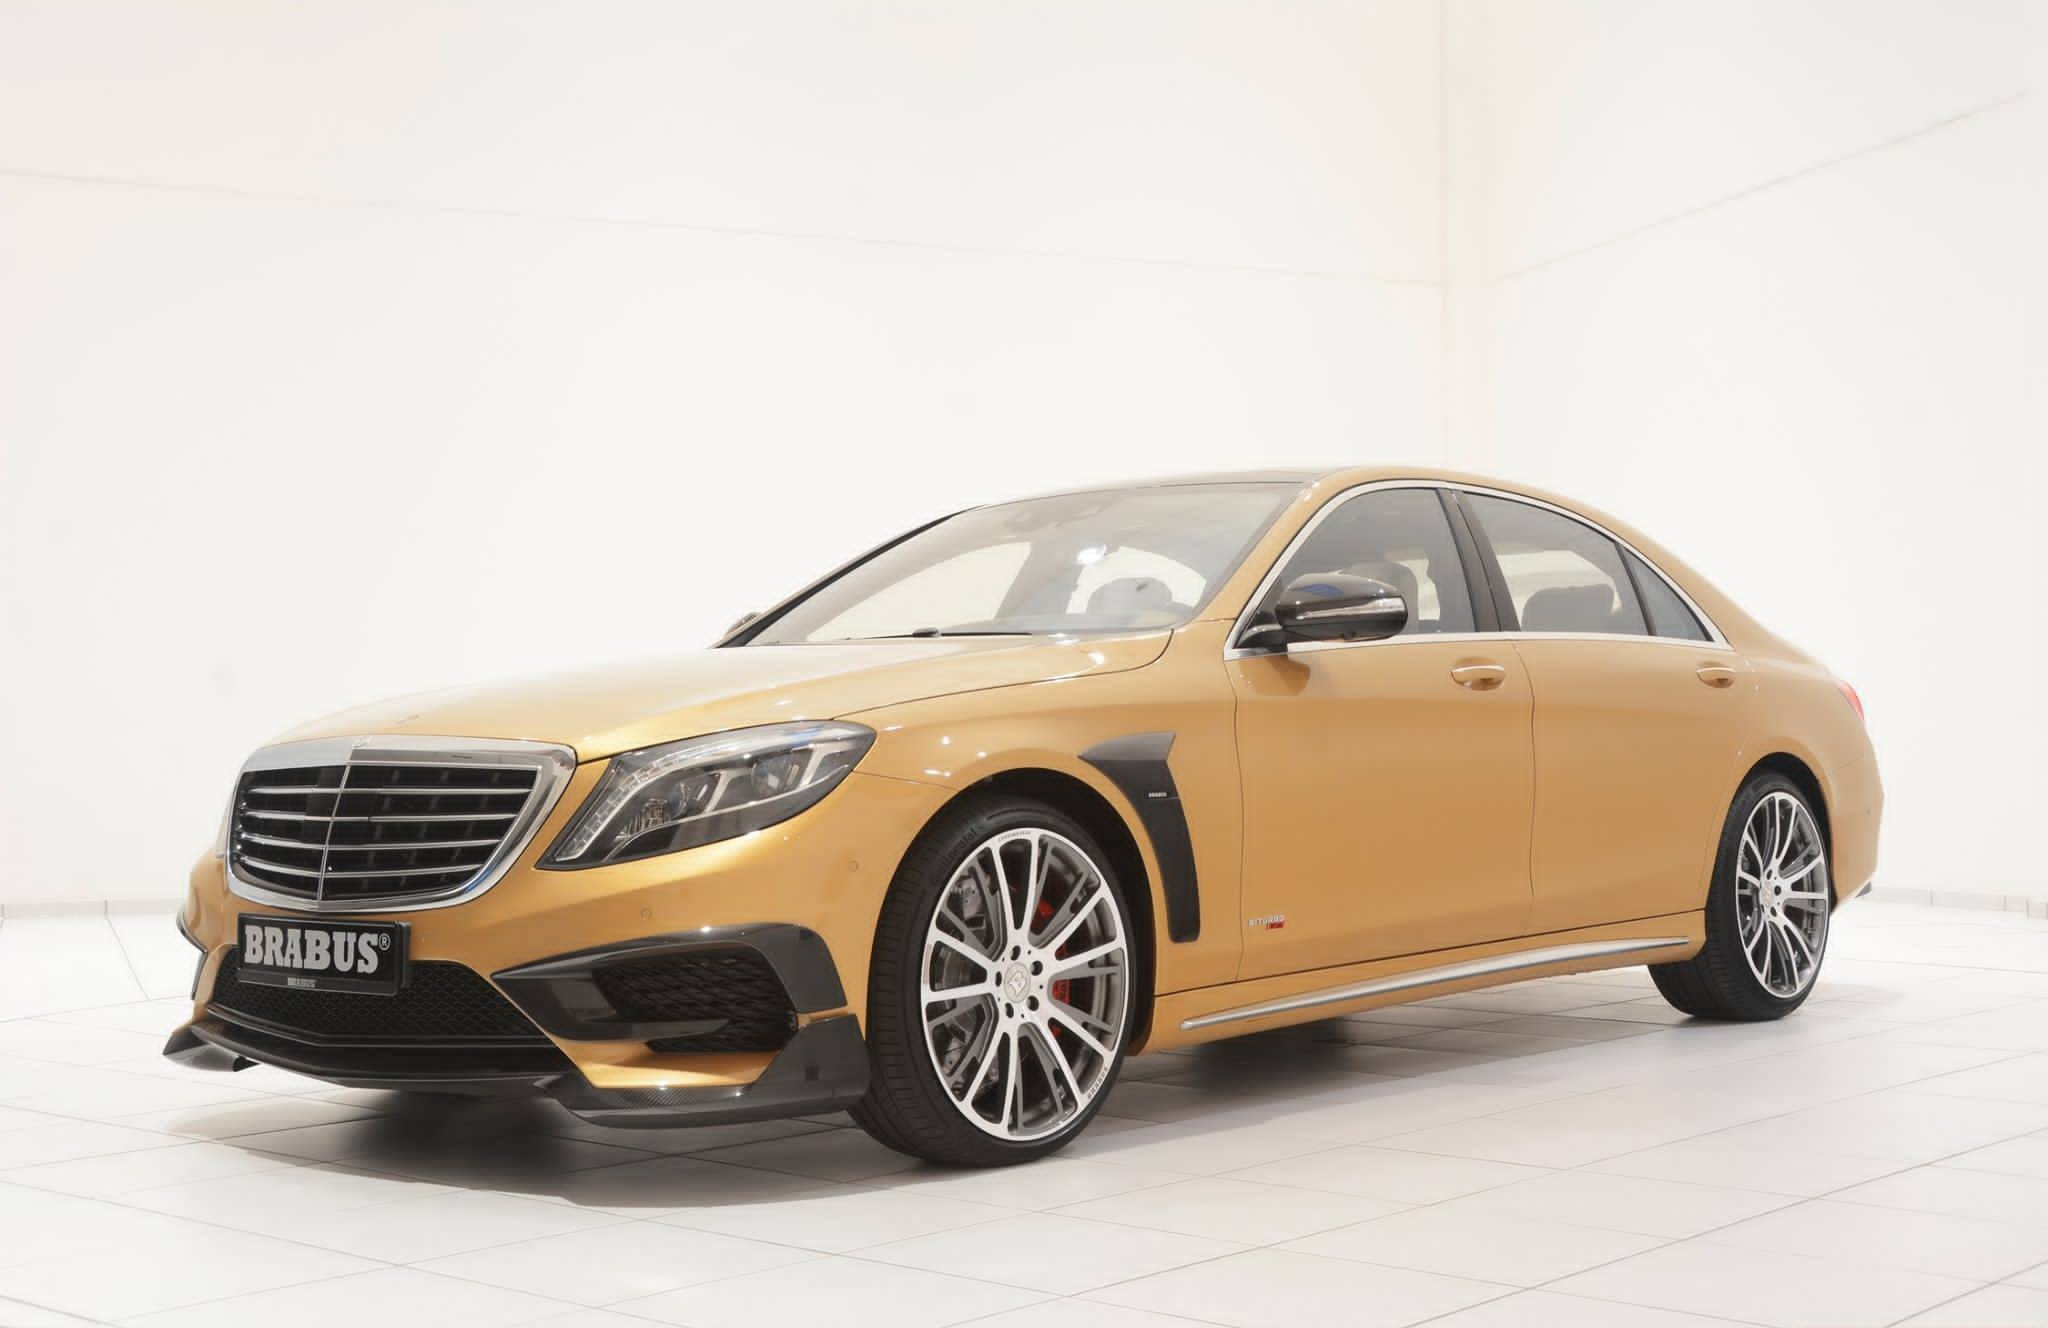 Brabus 850 mercedes s63 amg unveiled a for Mercedes benz brabus amg